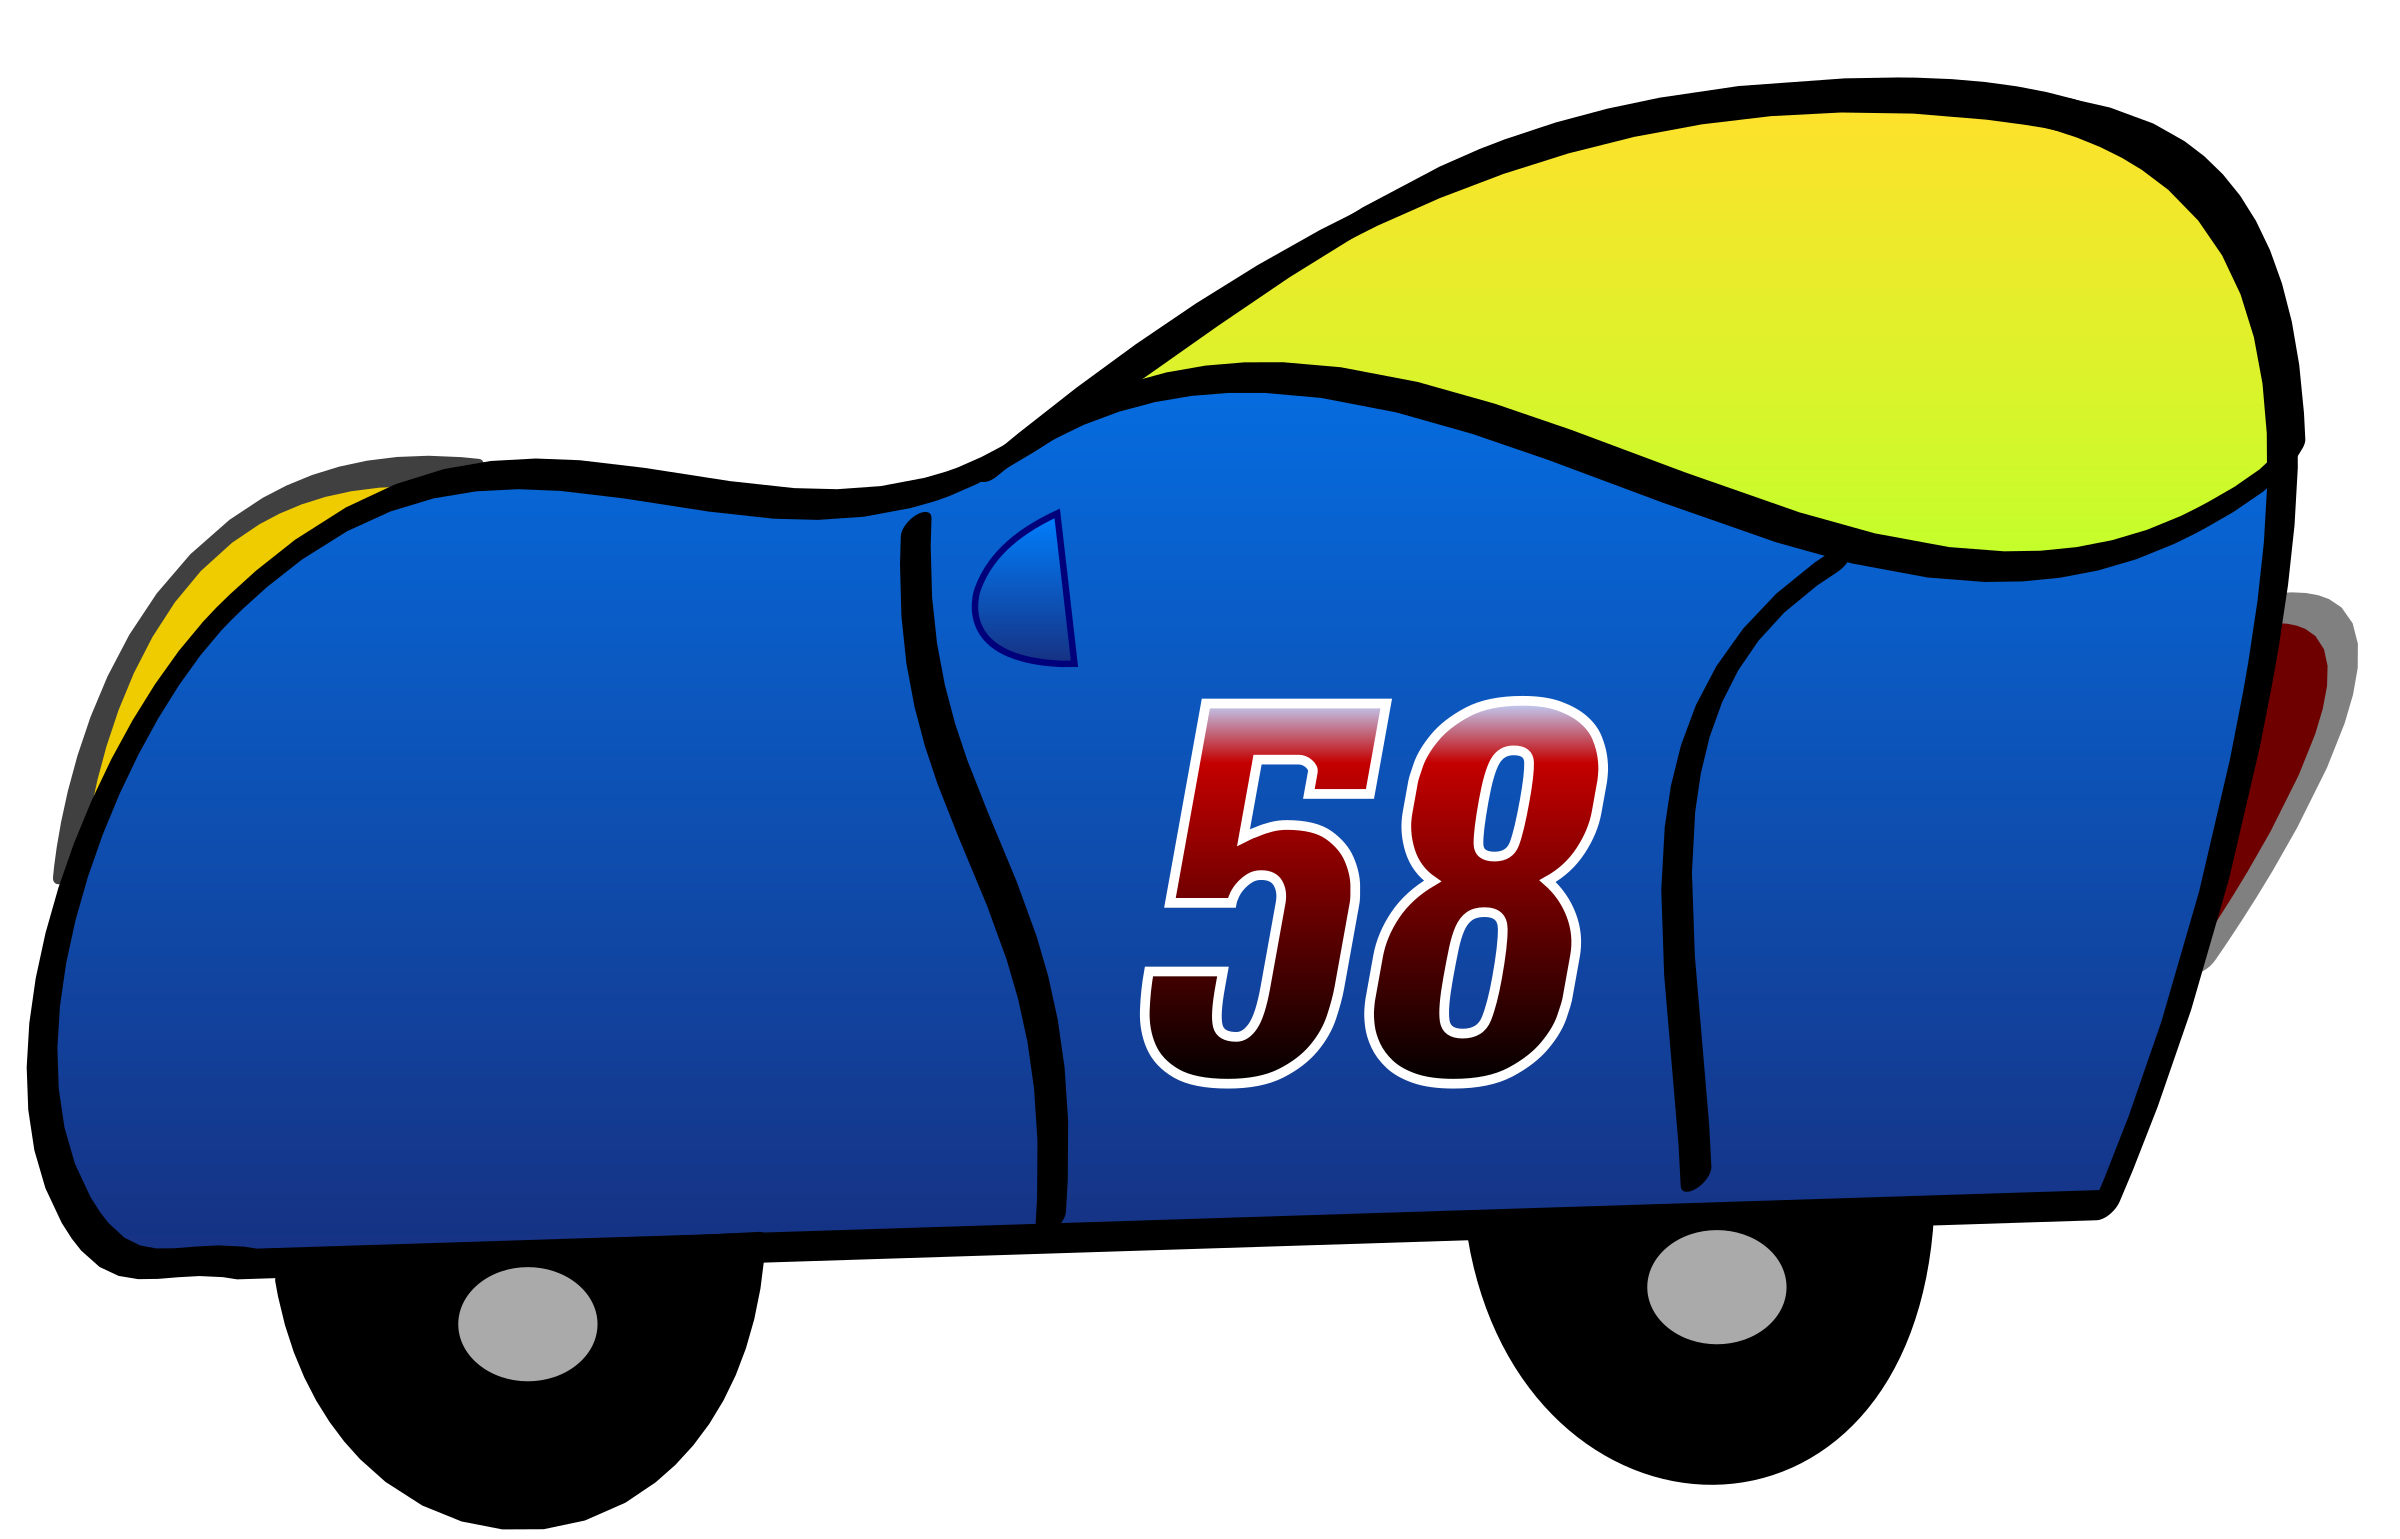 Car speeding away clipart image transparent download Funny Car Clipart at GetDrawings.com | Free for personal use Funny ... image transparent download